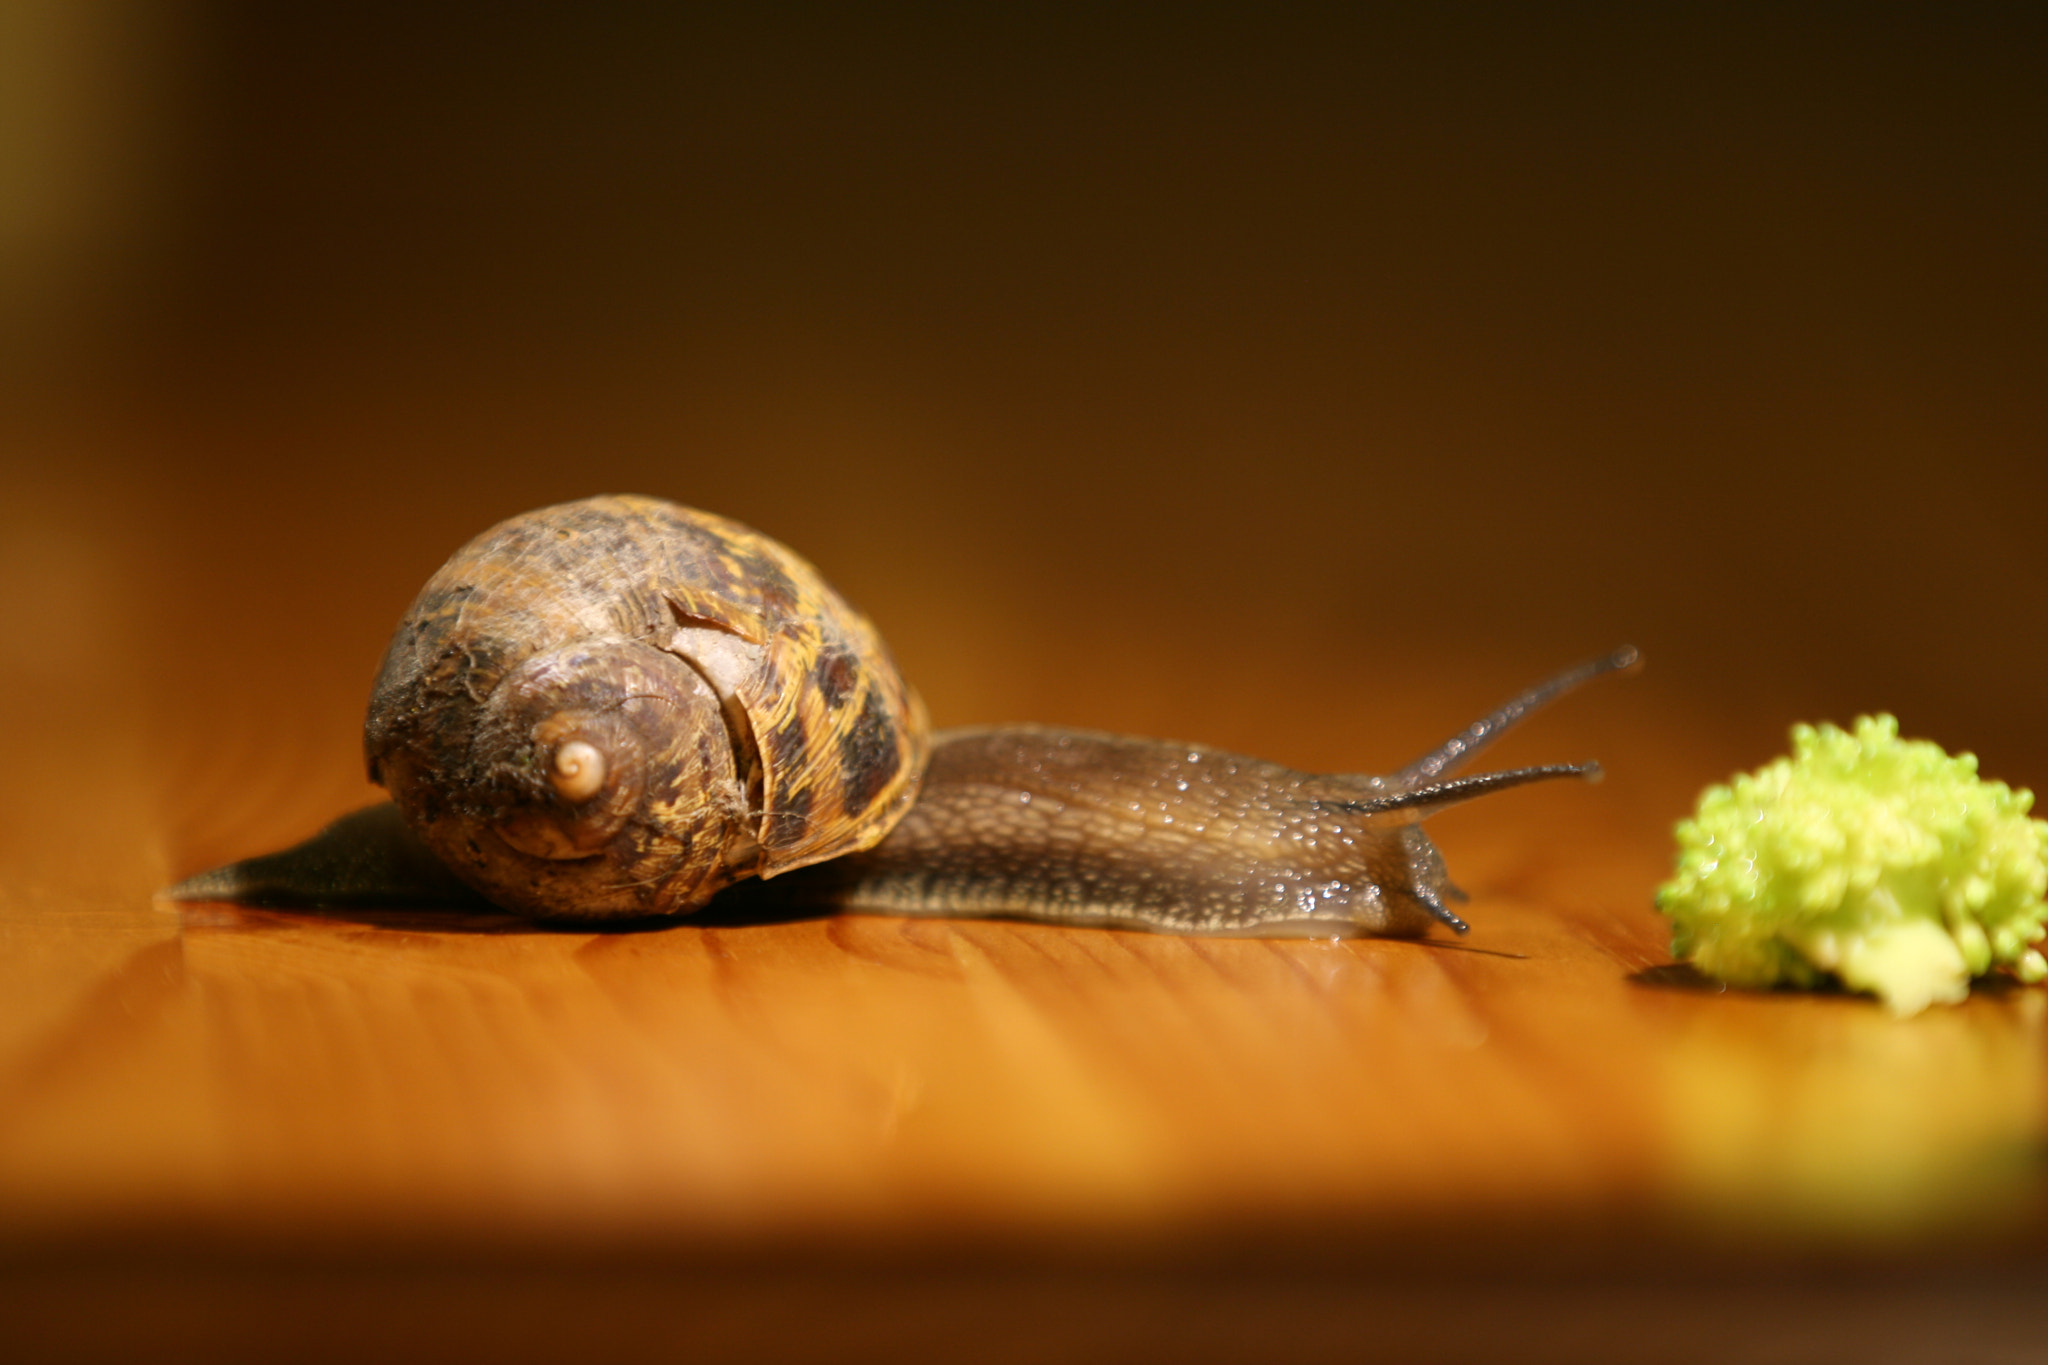 Photograph Snail (Cheerio) HD - The Time Lapse Guys by The Time Lapse Guys on 500px